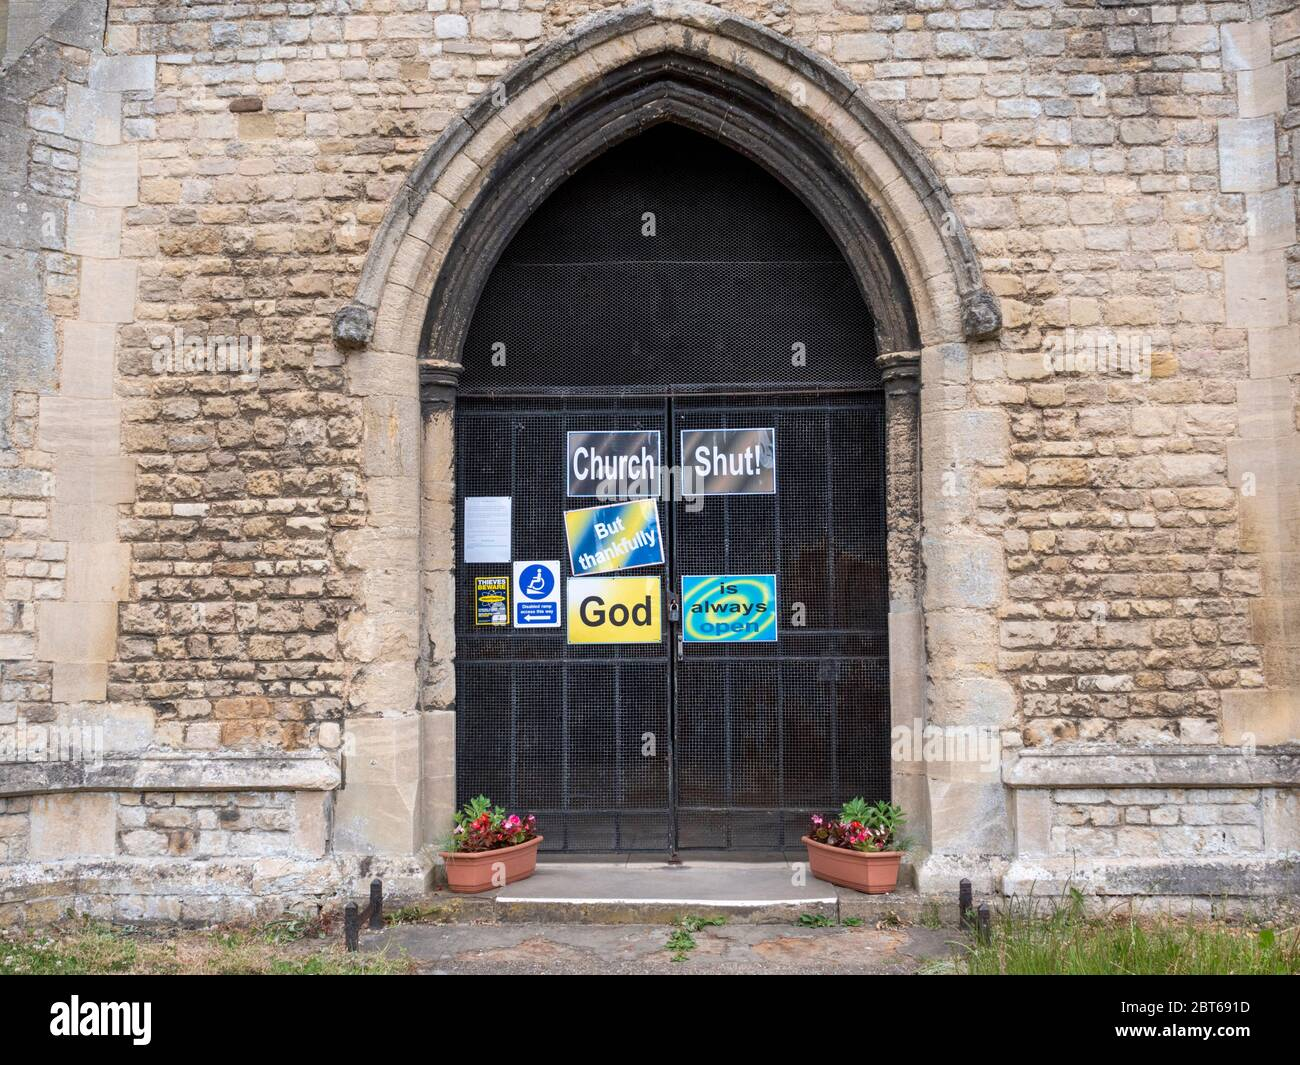 Willingham Cambridgeshire, UK. 23rd May, 2020. The church remains closed with signs on the shut door announcing that the church is closed but God is always open due to the coronavirus or covid-19 pandemic. President Trump has called for churches in USA to be reopened and they remain closed in the UK. Credit: Julian Eales/Alamy Live News Stock Photo